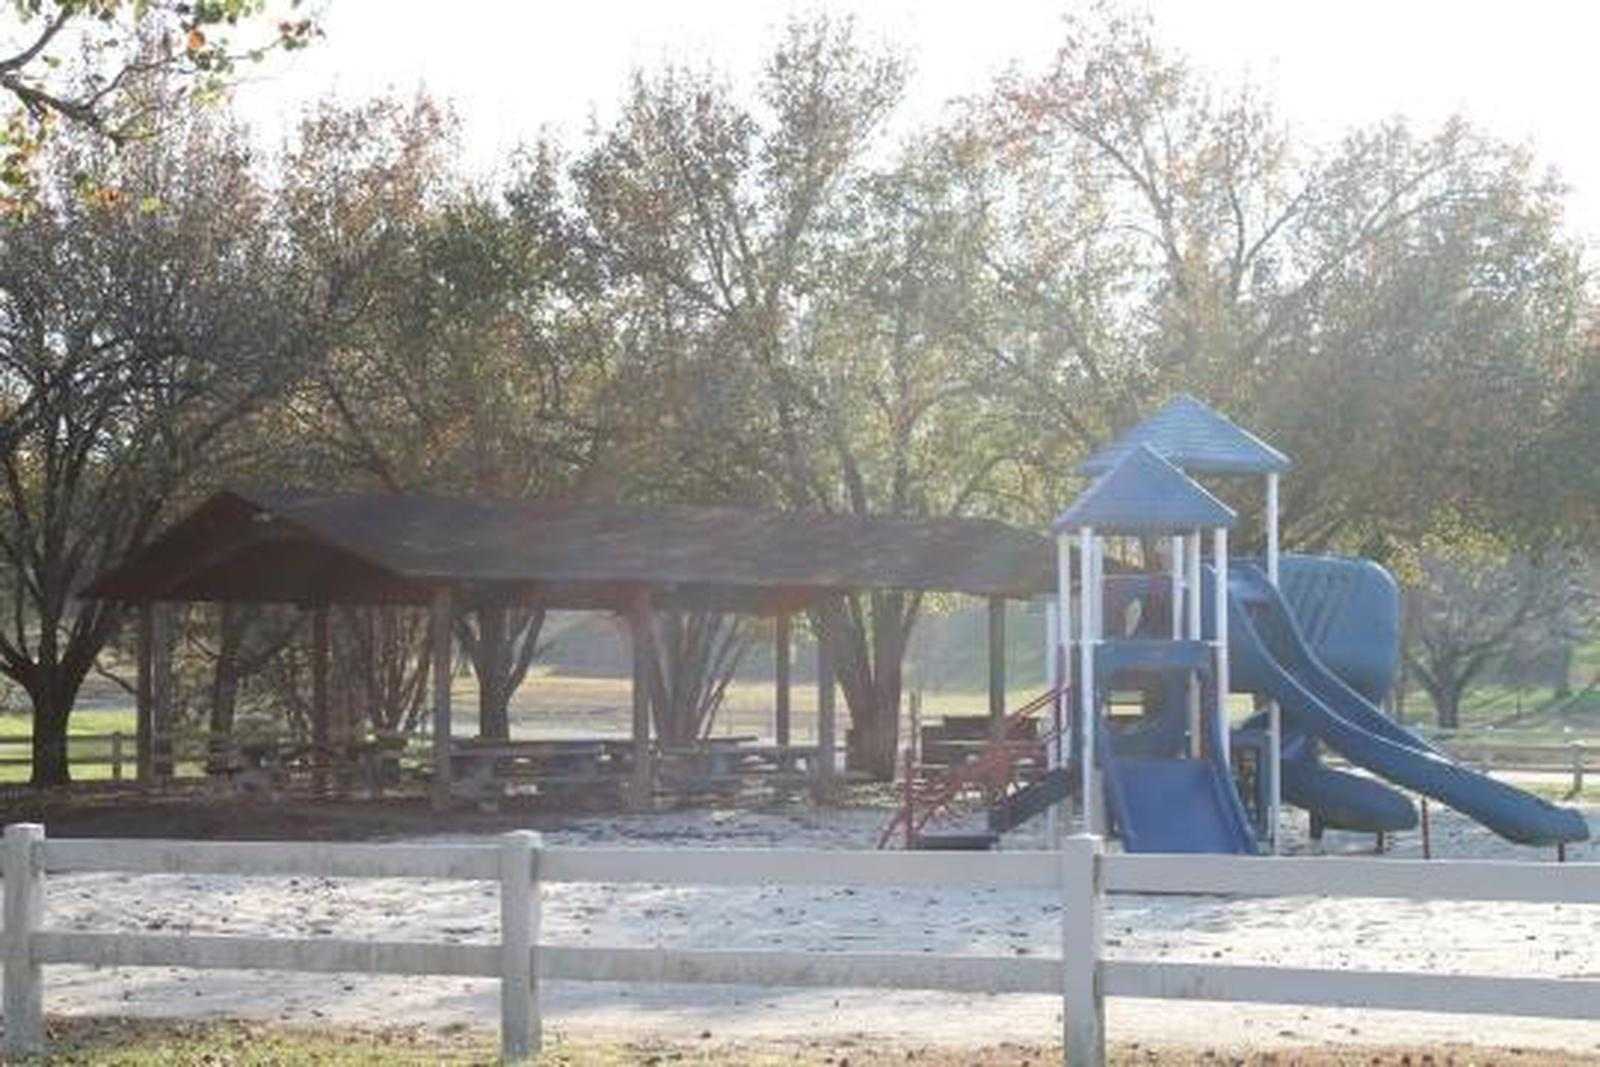 Tailwater Recreation Area Shelter and Playground